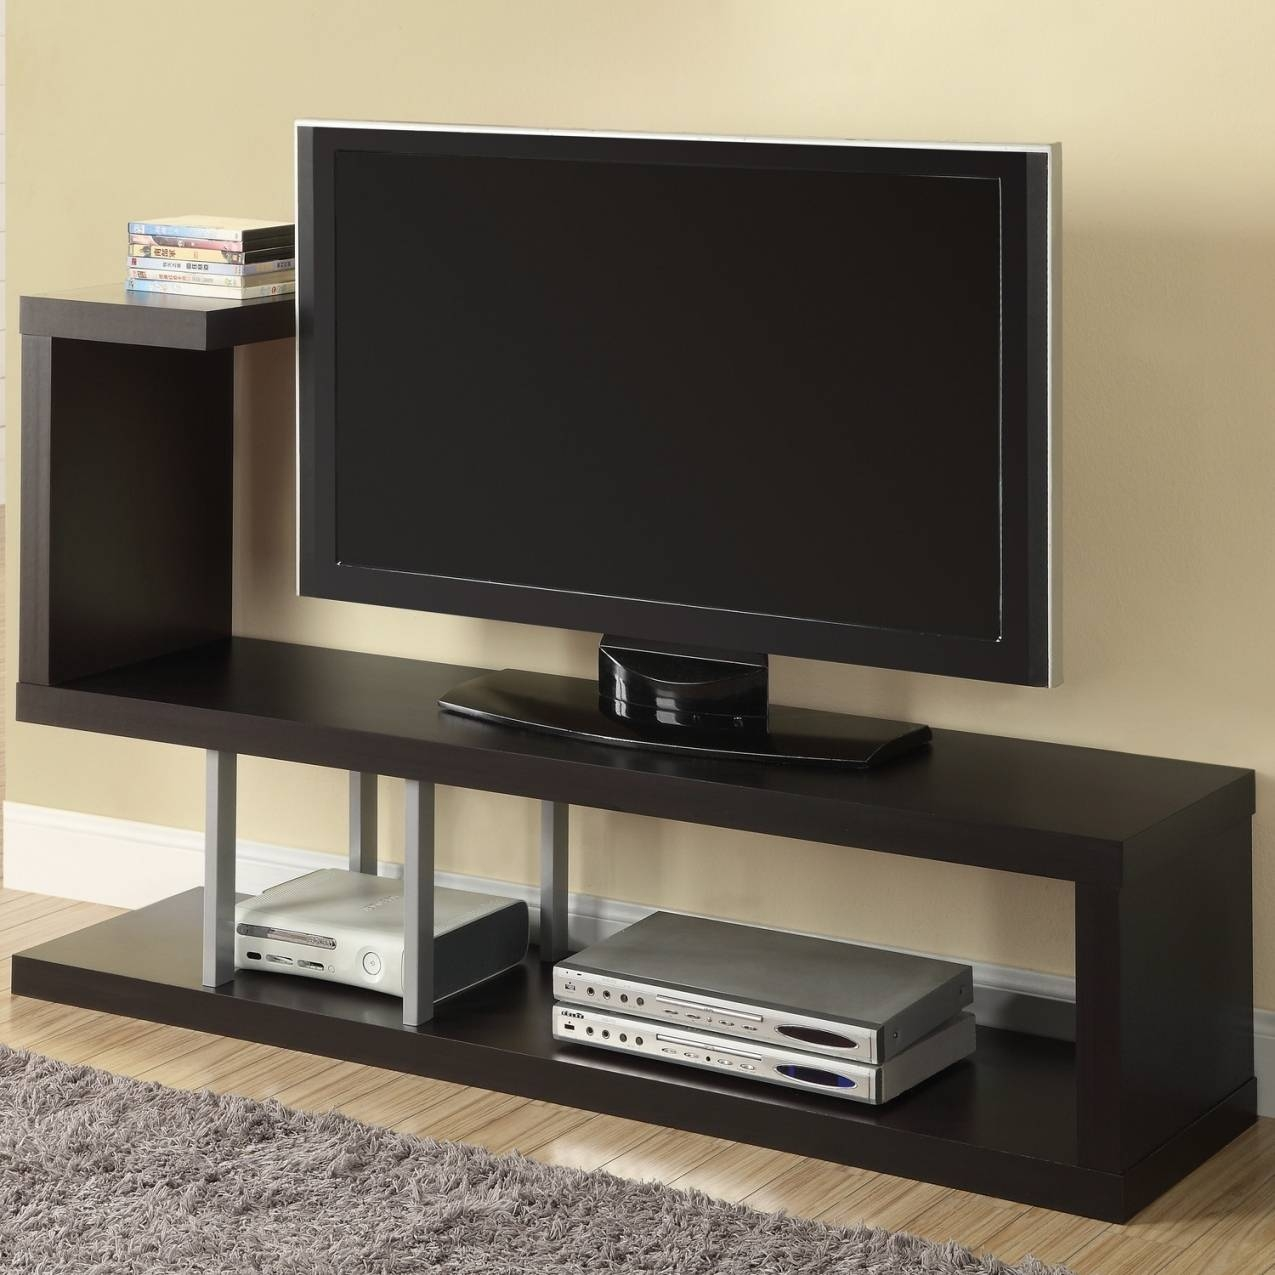 Unique Tv Stand Ideas inside Unique Tv Stands (Image 11 of 15)